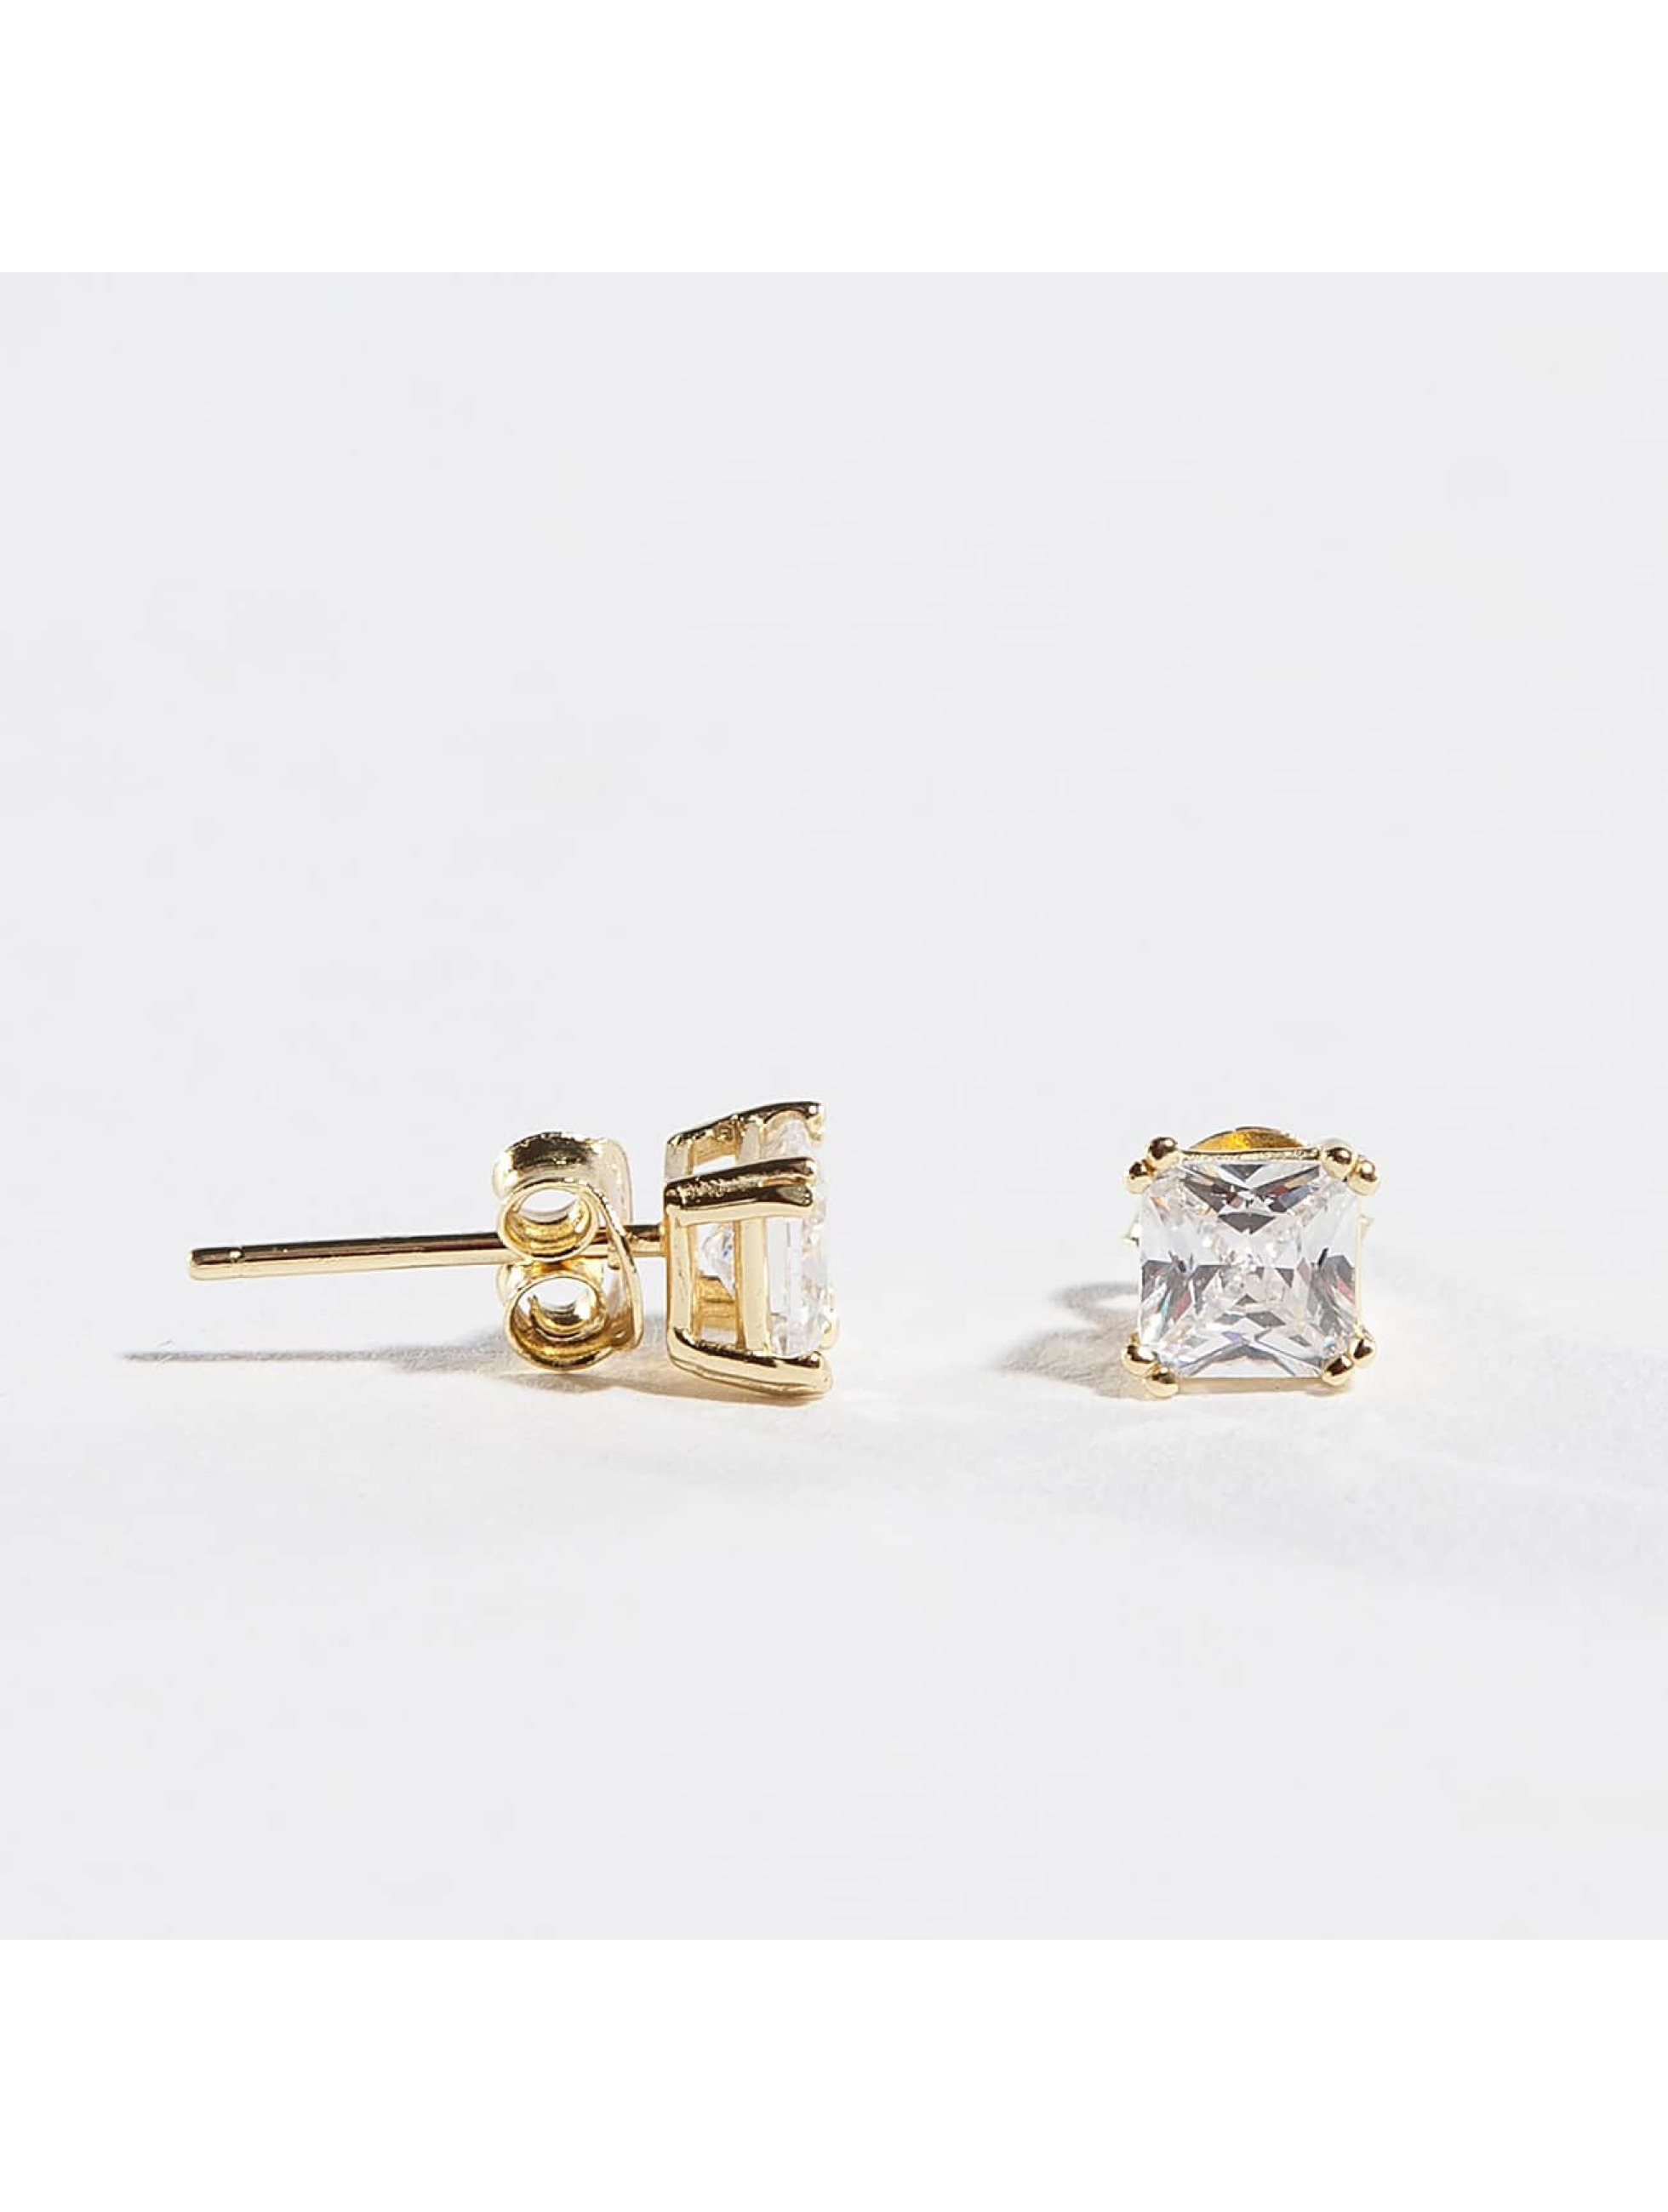 KING ICE Earring 4mm 925 Sterling_Silver Princess Cut gold colored